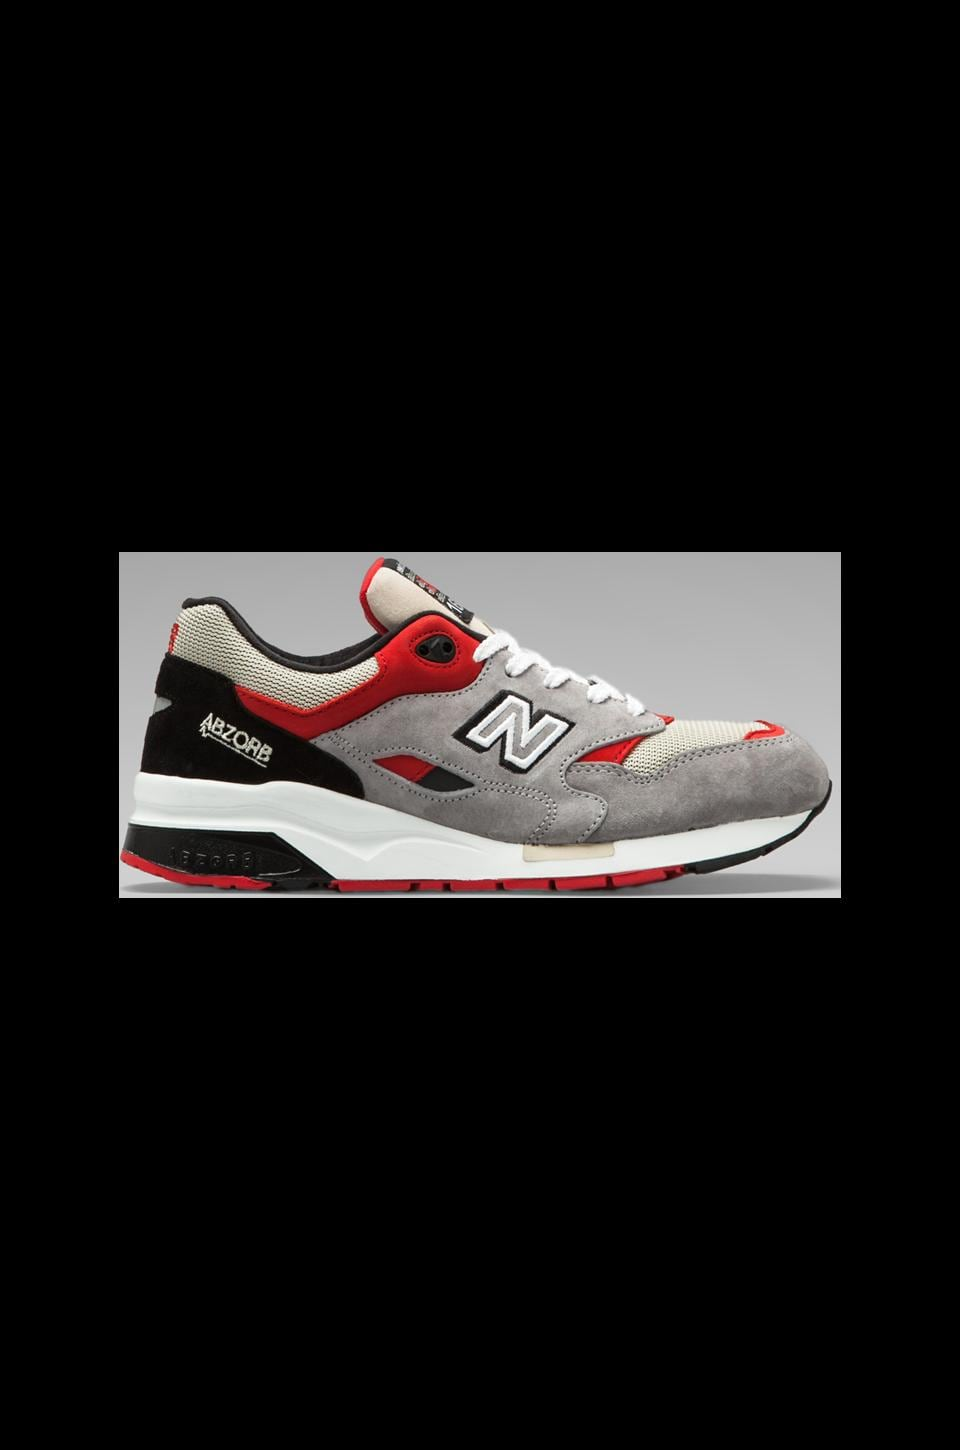 New Balance Elite Edition CM1600 in Grey/Black